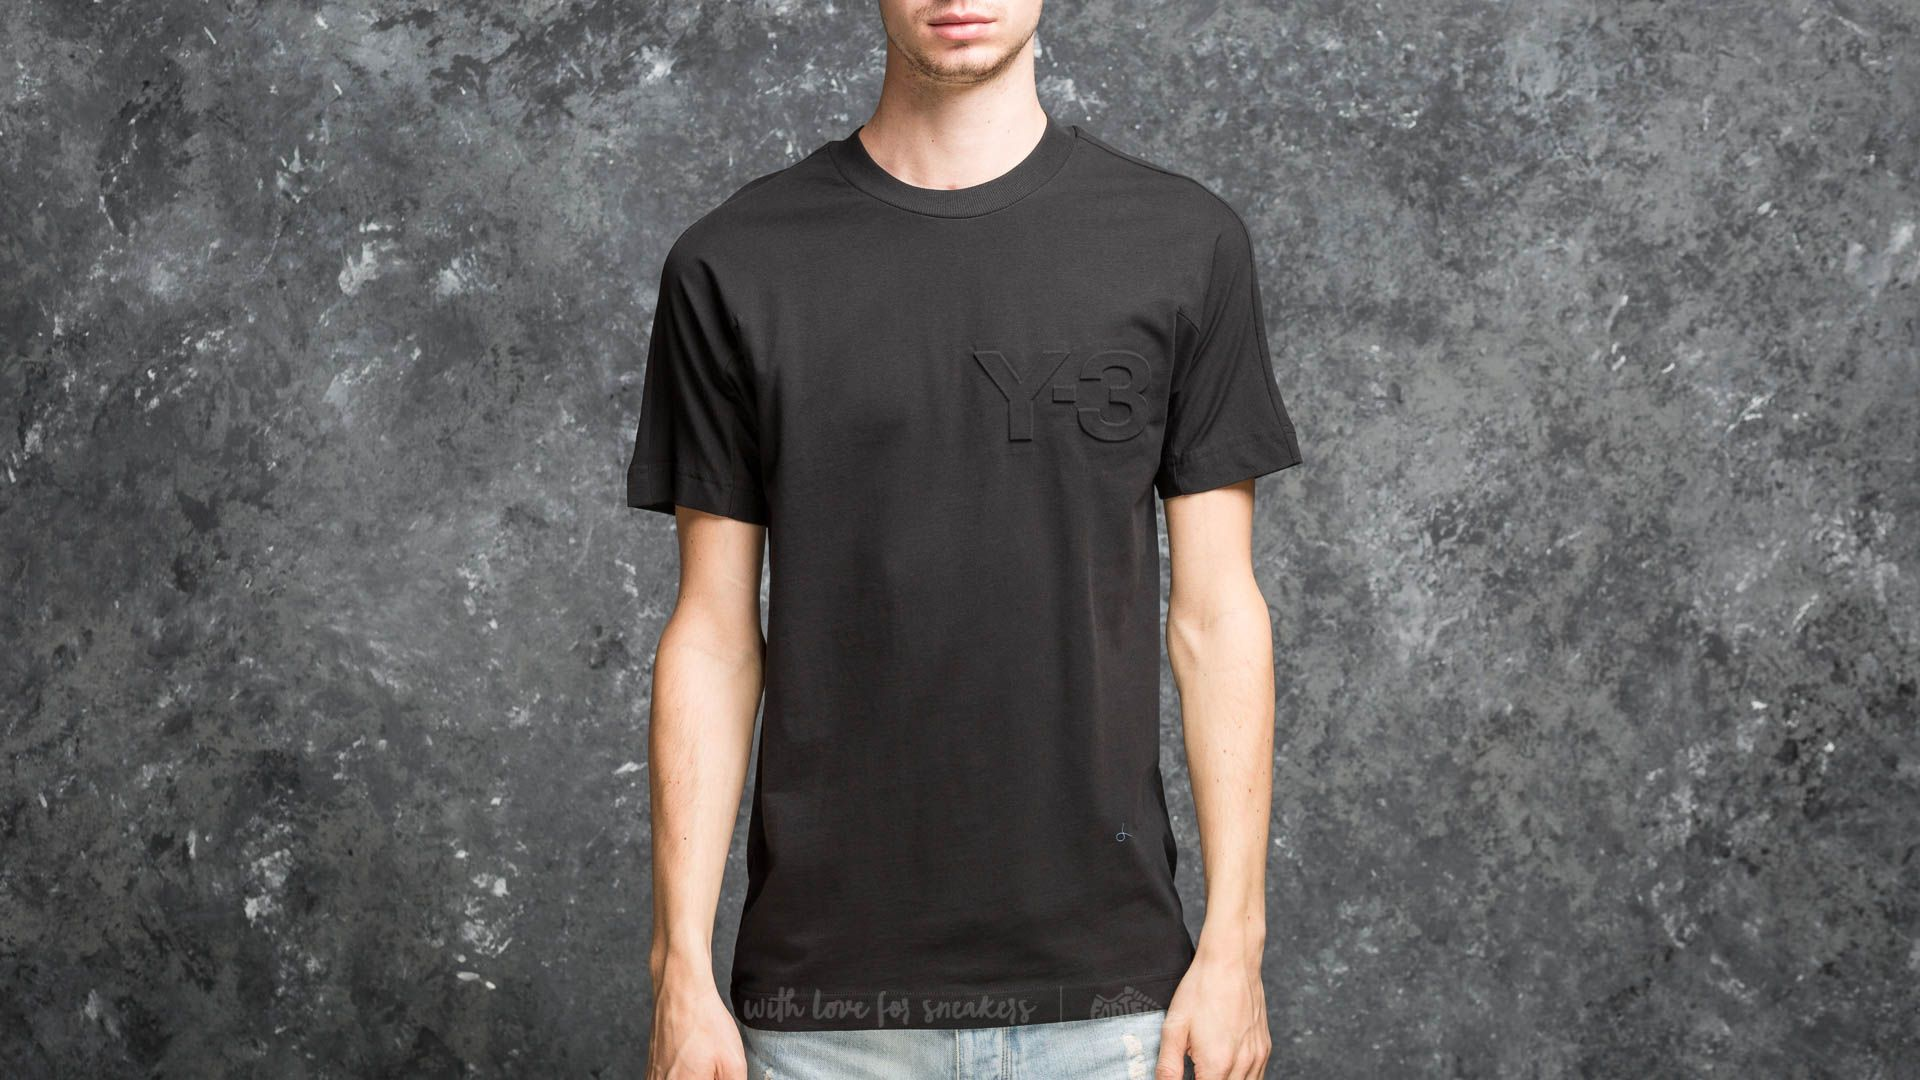 Y-3 Graphic Logo Tee Black - 18012